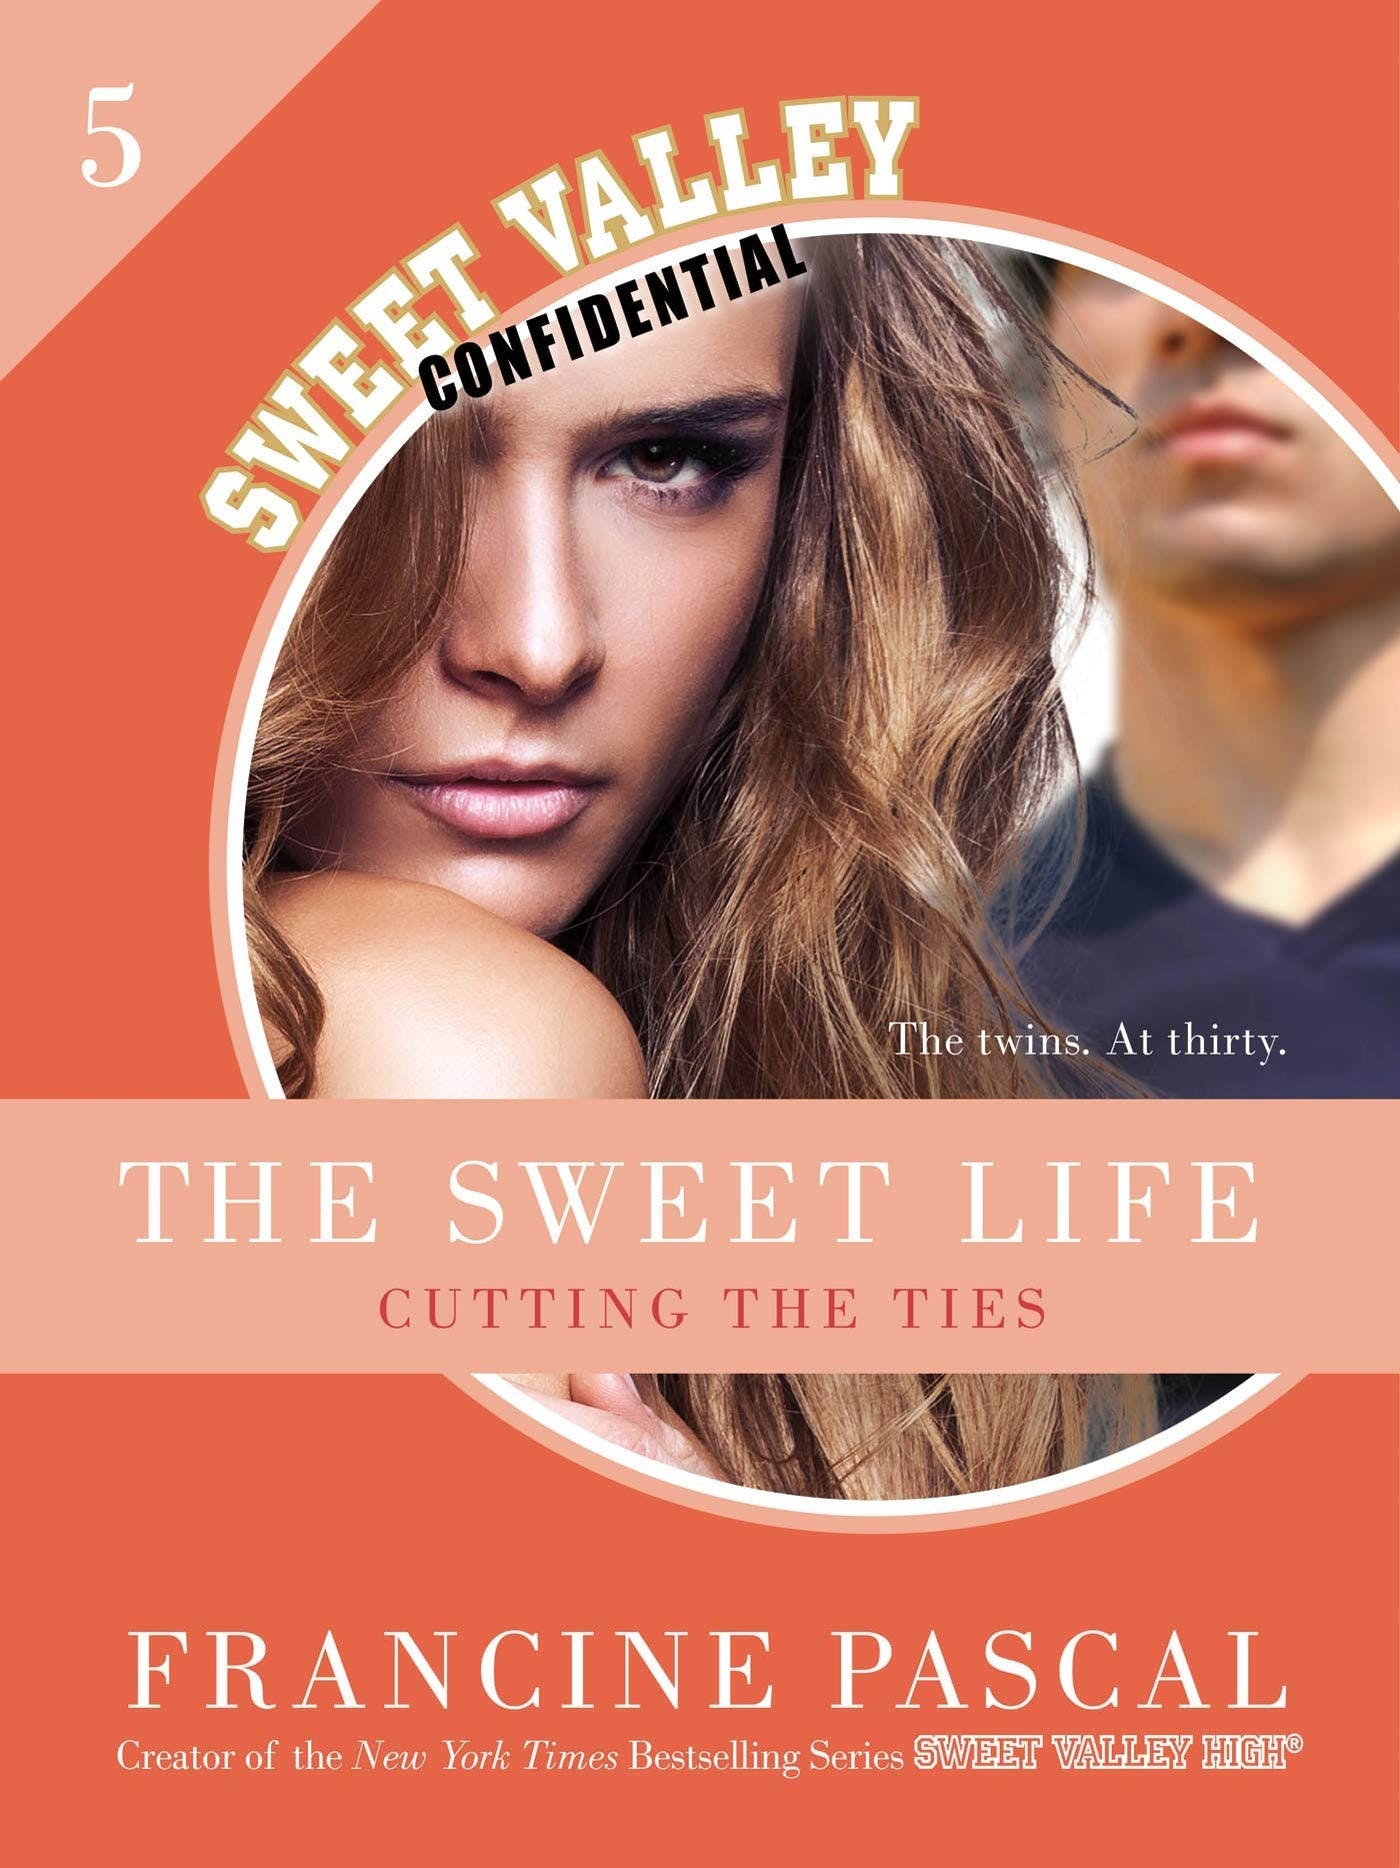 Image of The Sweet Life #5: An E-Serial